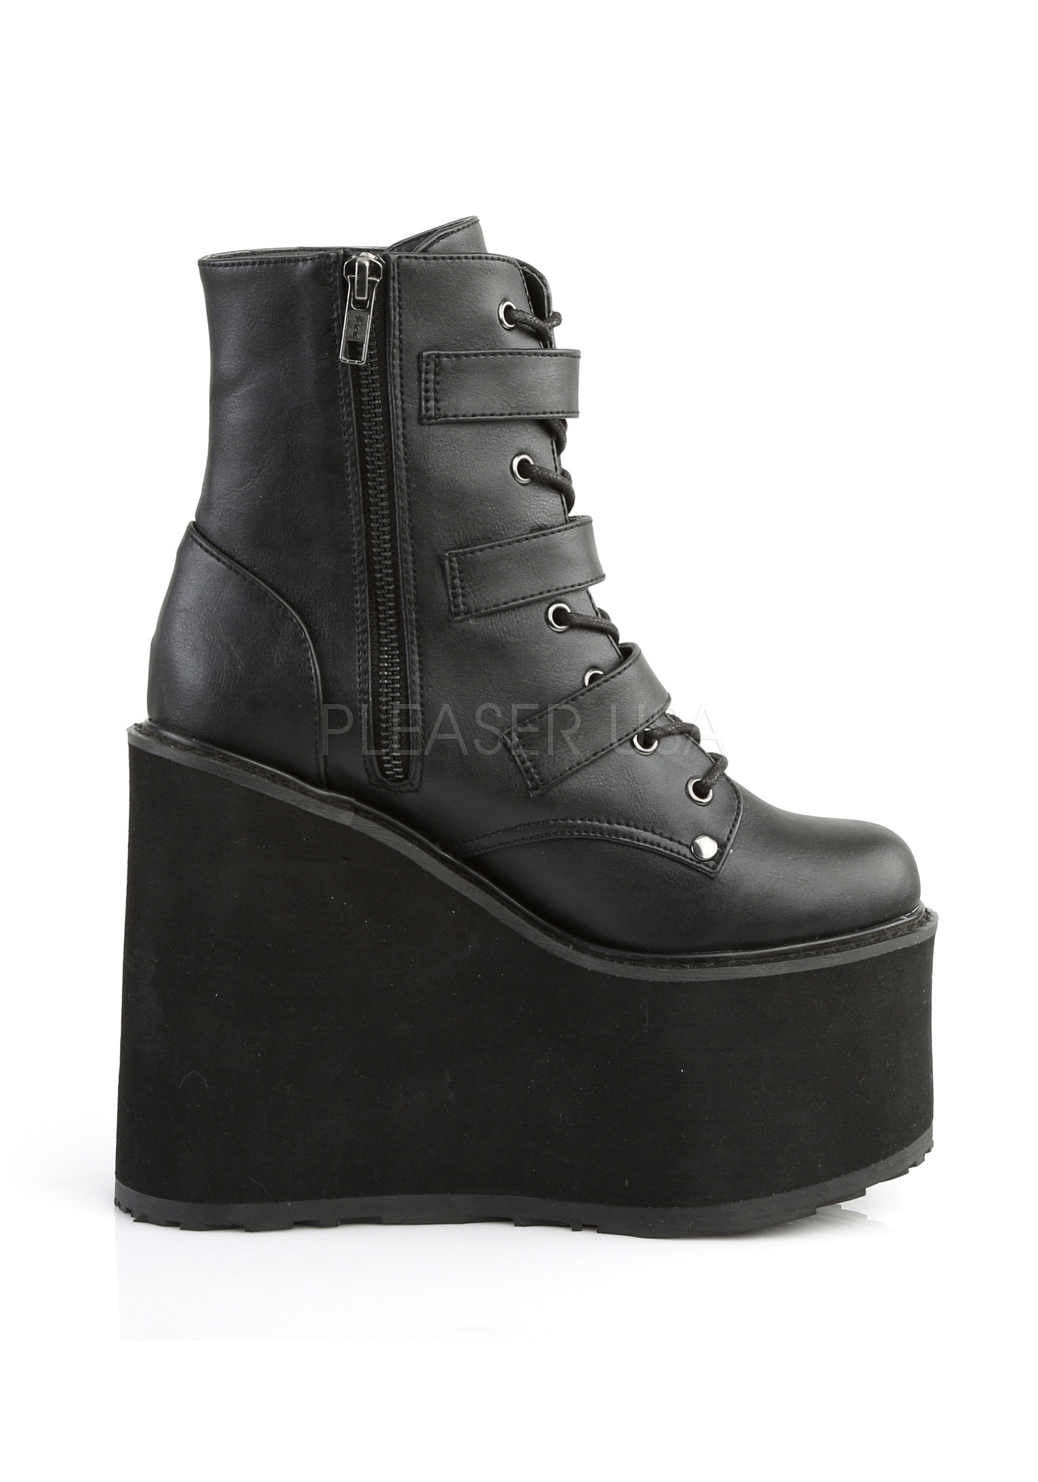 Demonia SWING-103 5 5 5 1 2'' Platform Lace-Up Ankle Boot W 3 Buckle Straps Side Zip a22ae0